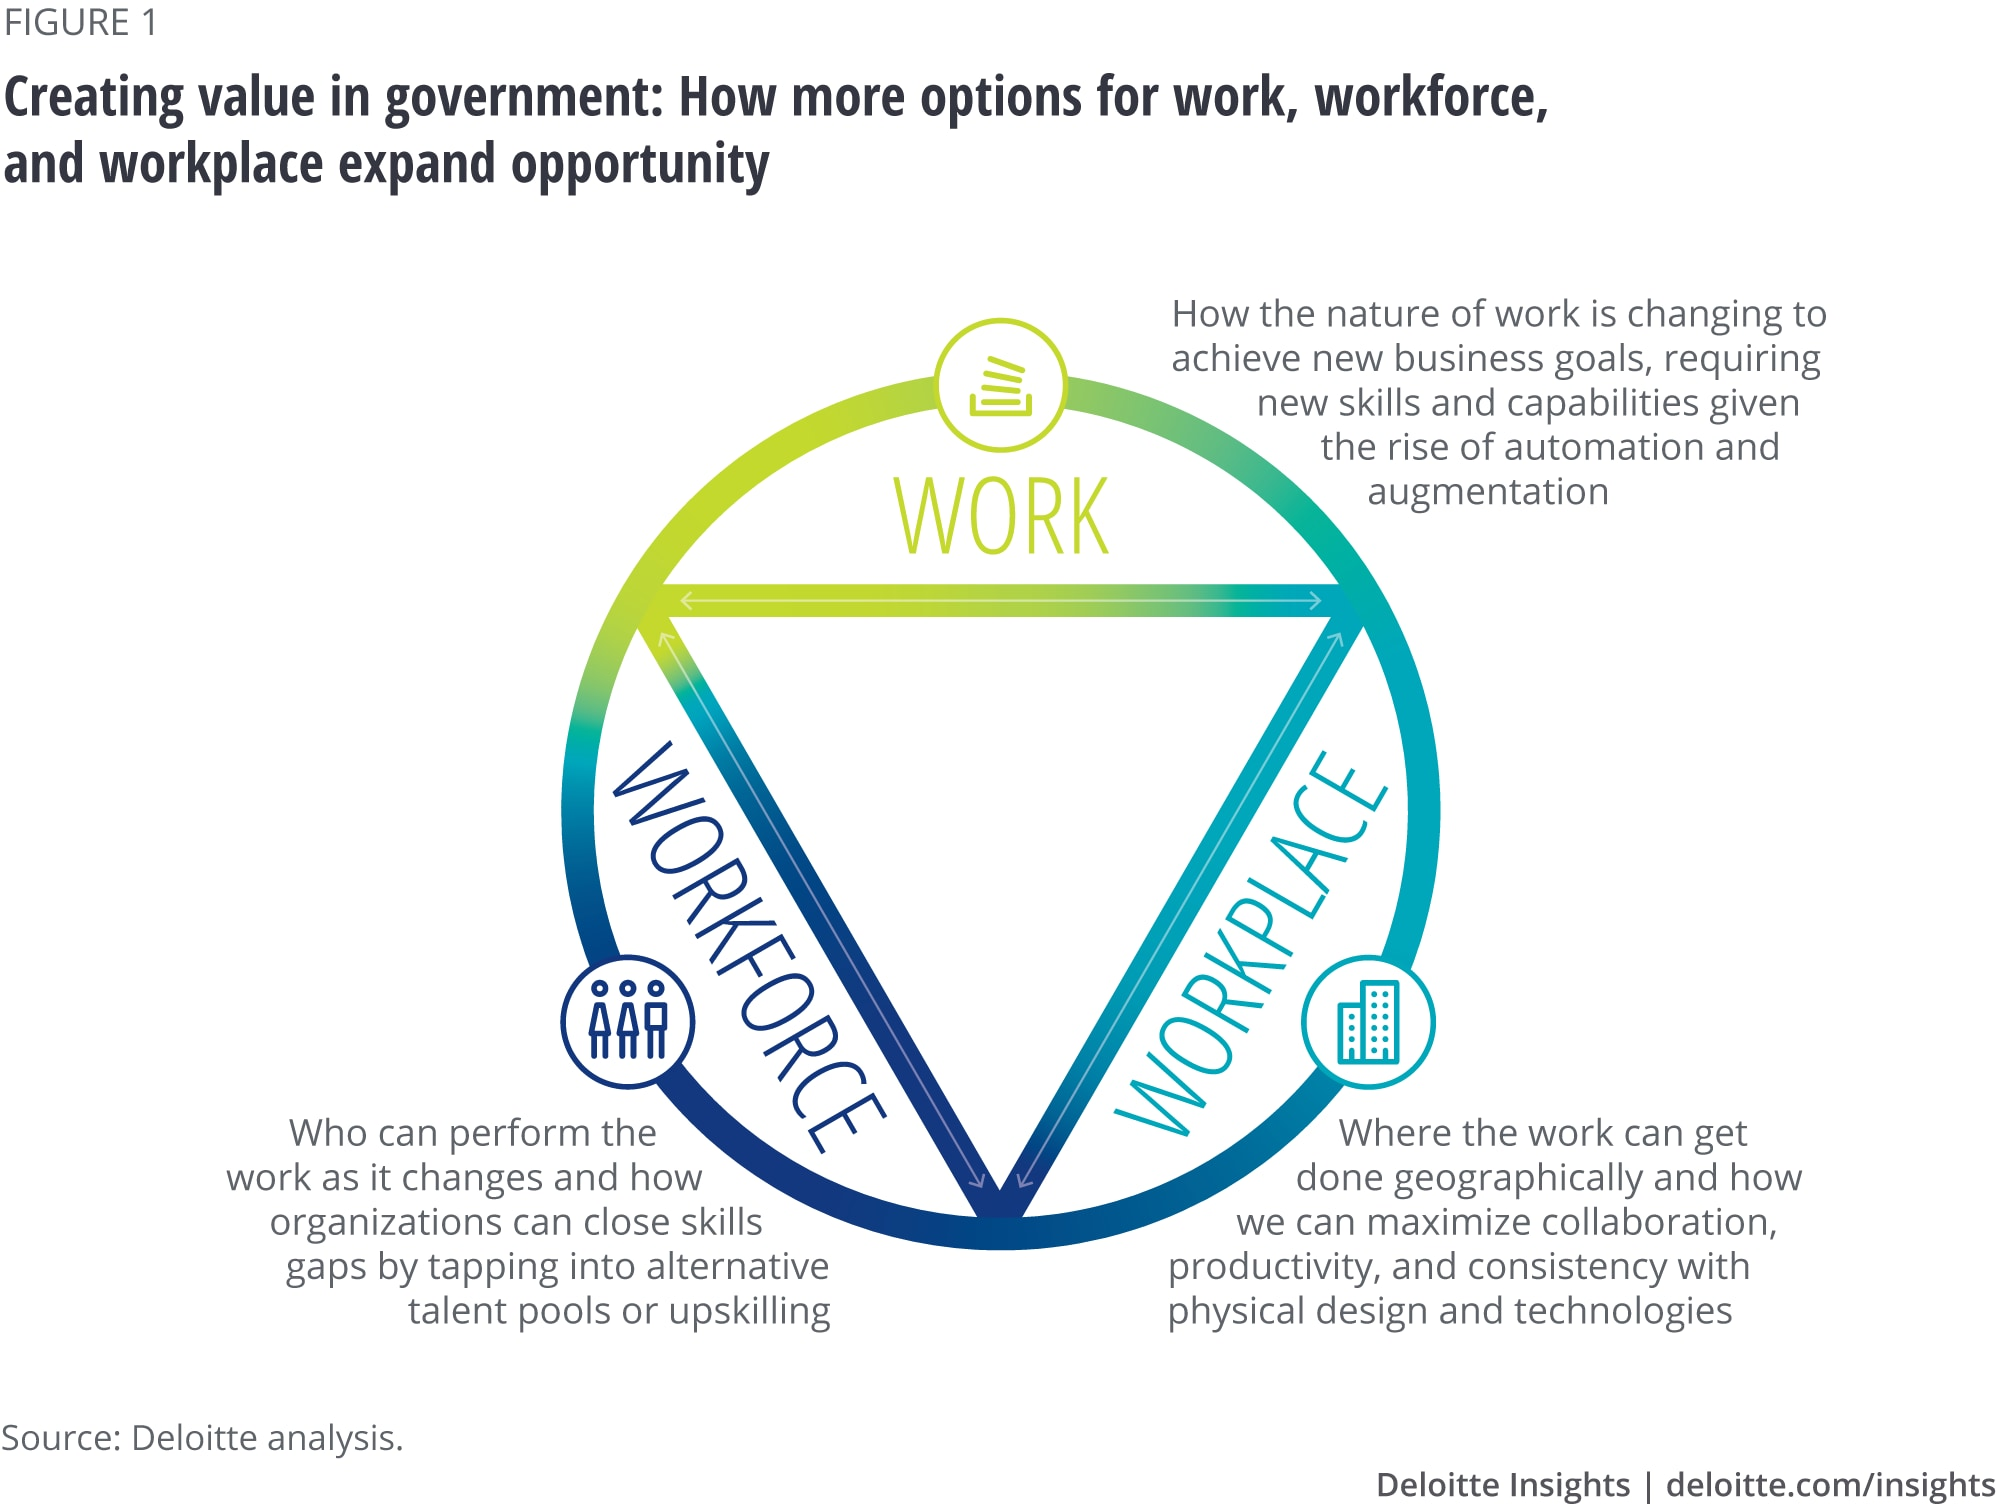 Future of work in government | Deloitte Insights